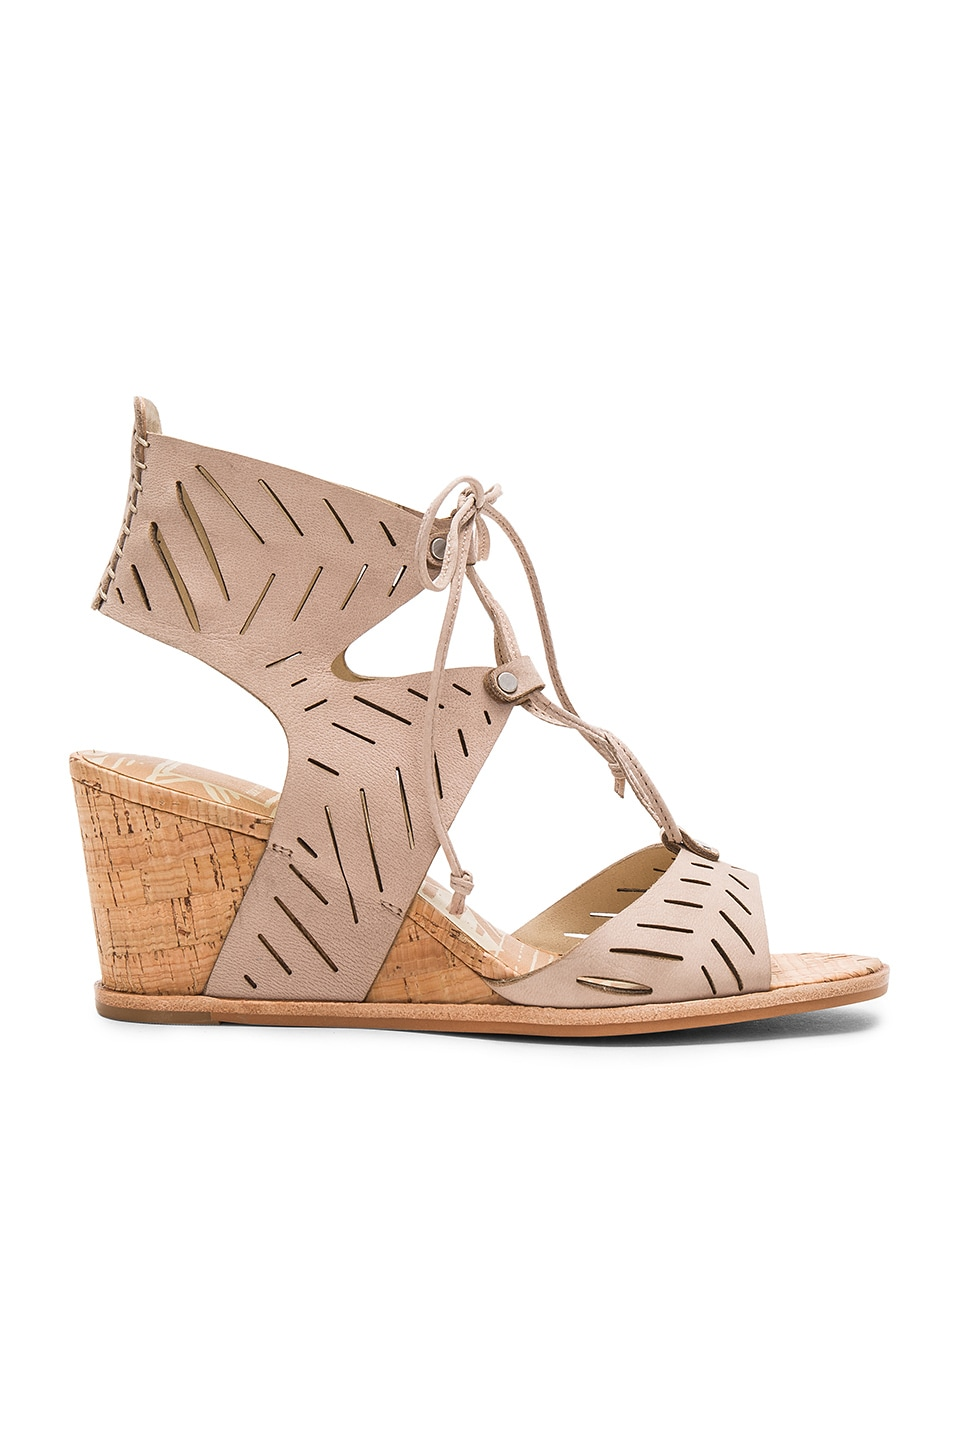 Dolce Vita Langly Wedge in Taupe